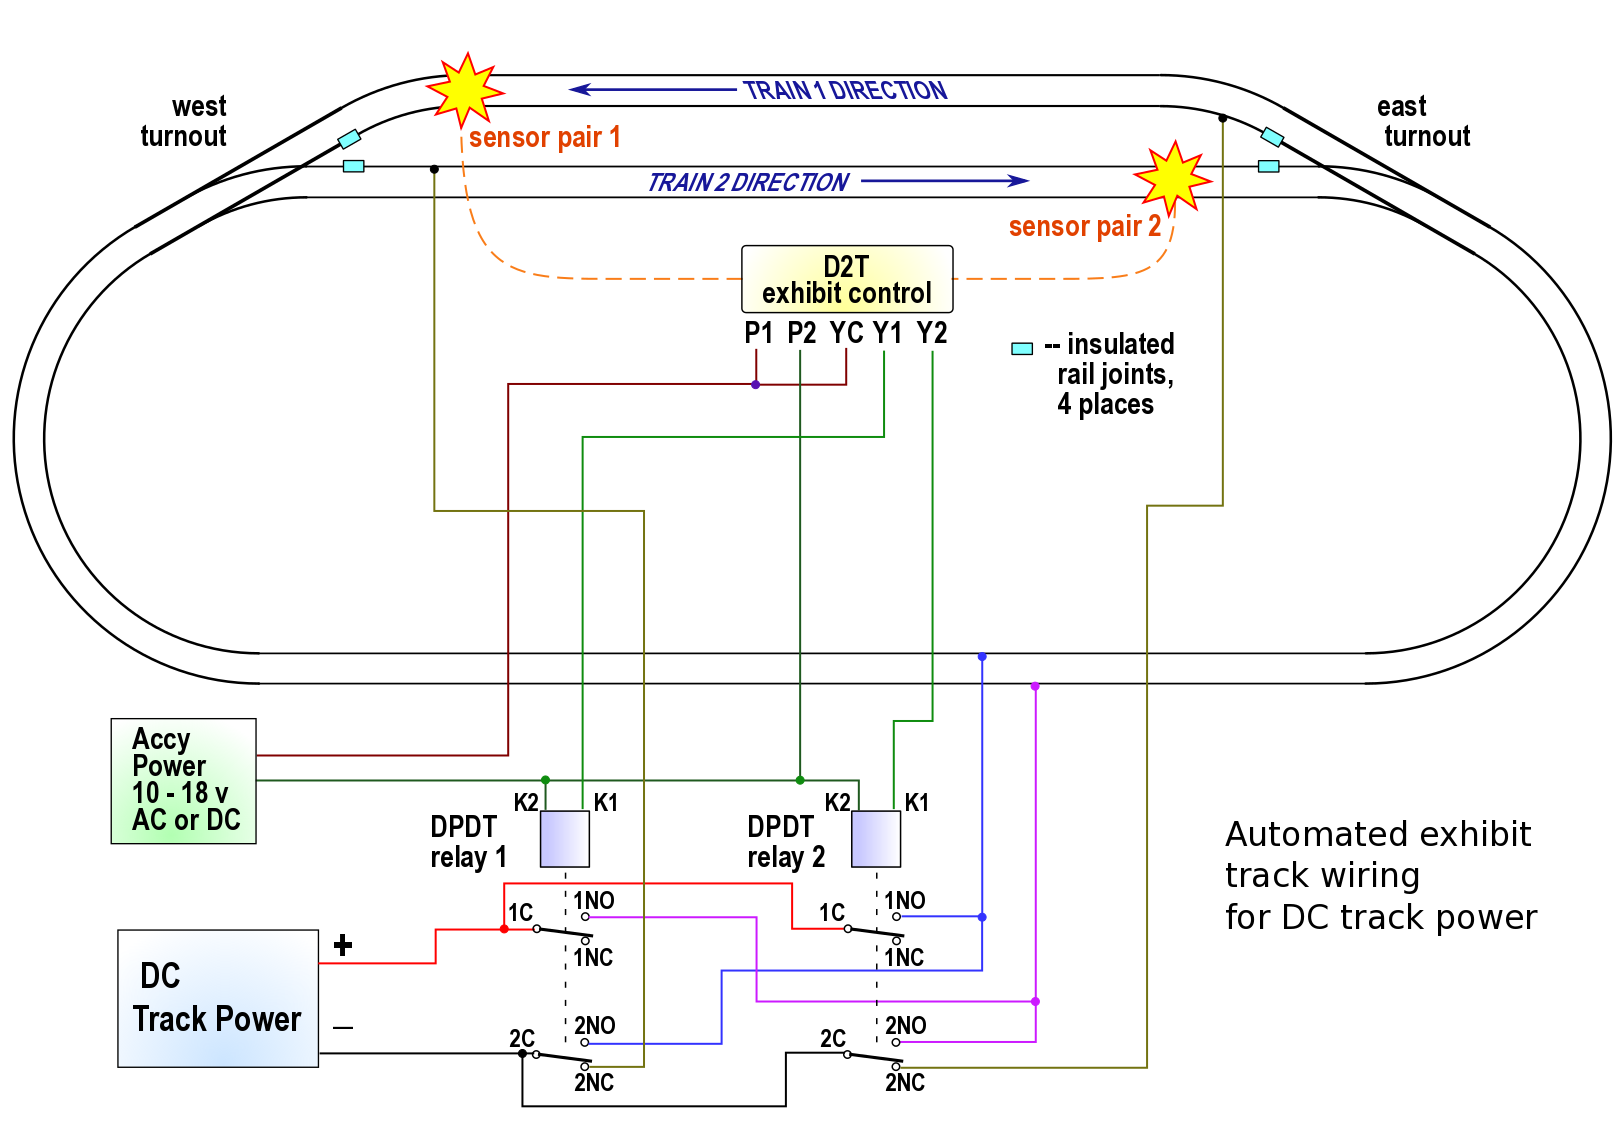 medium resolution of dpdt switch wiring diagram for wye